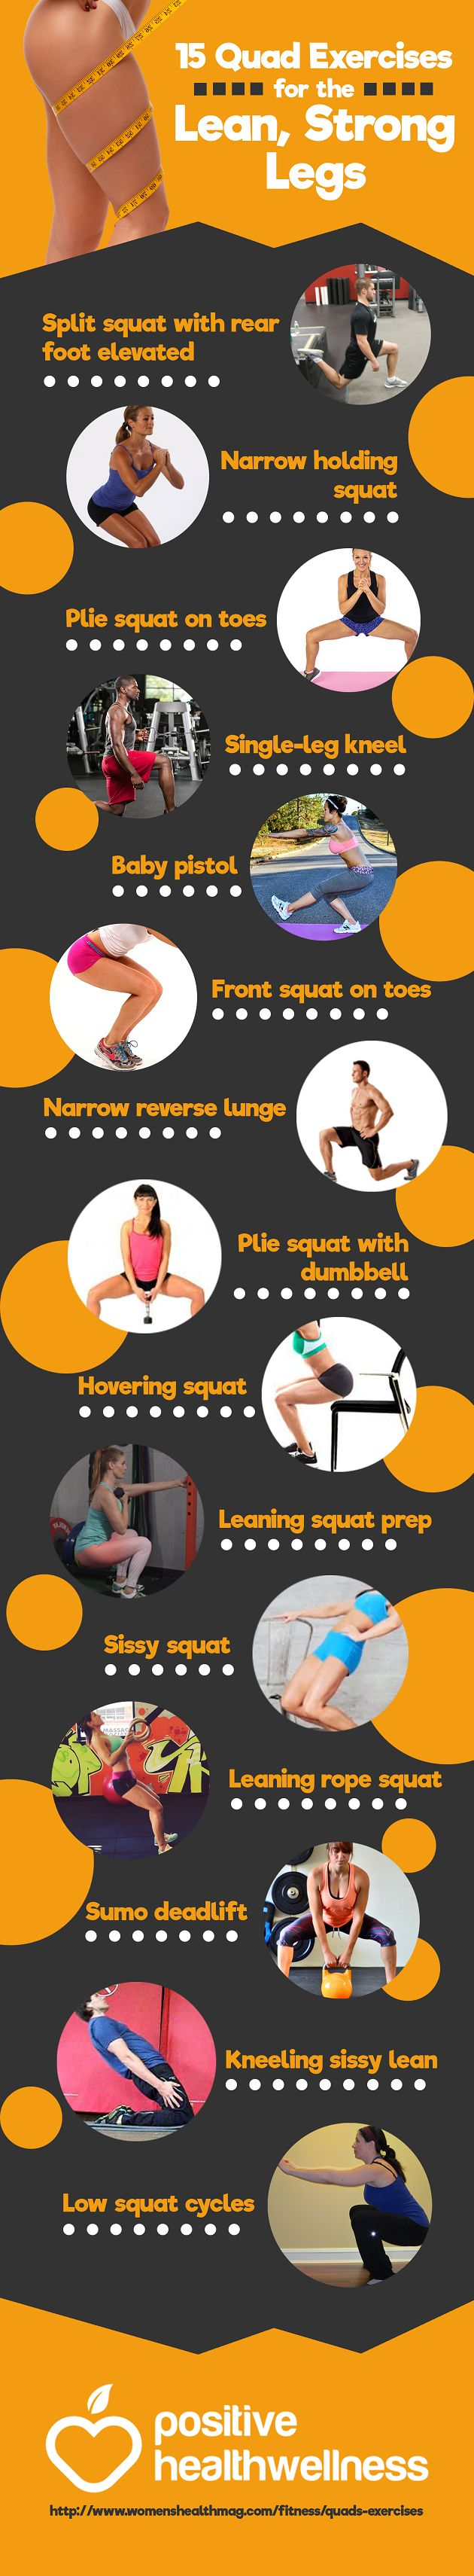 15 Quad Exercises for the Lean, Strong Legs – Positive Health Wellness Infographic